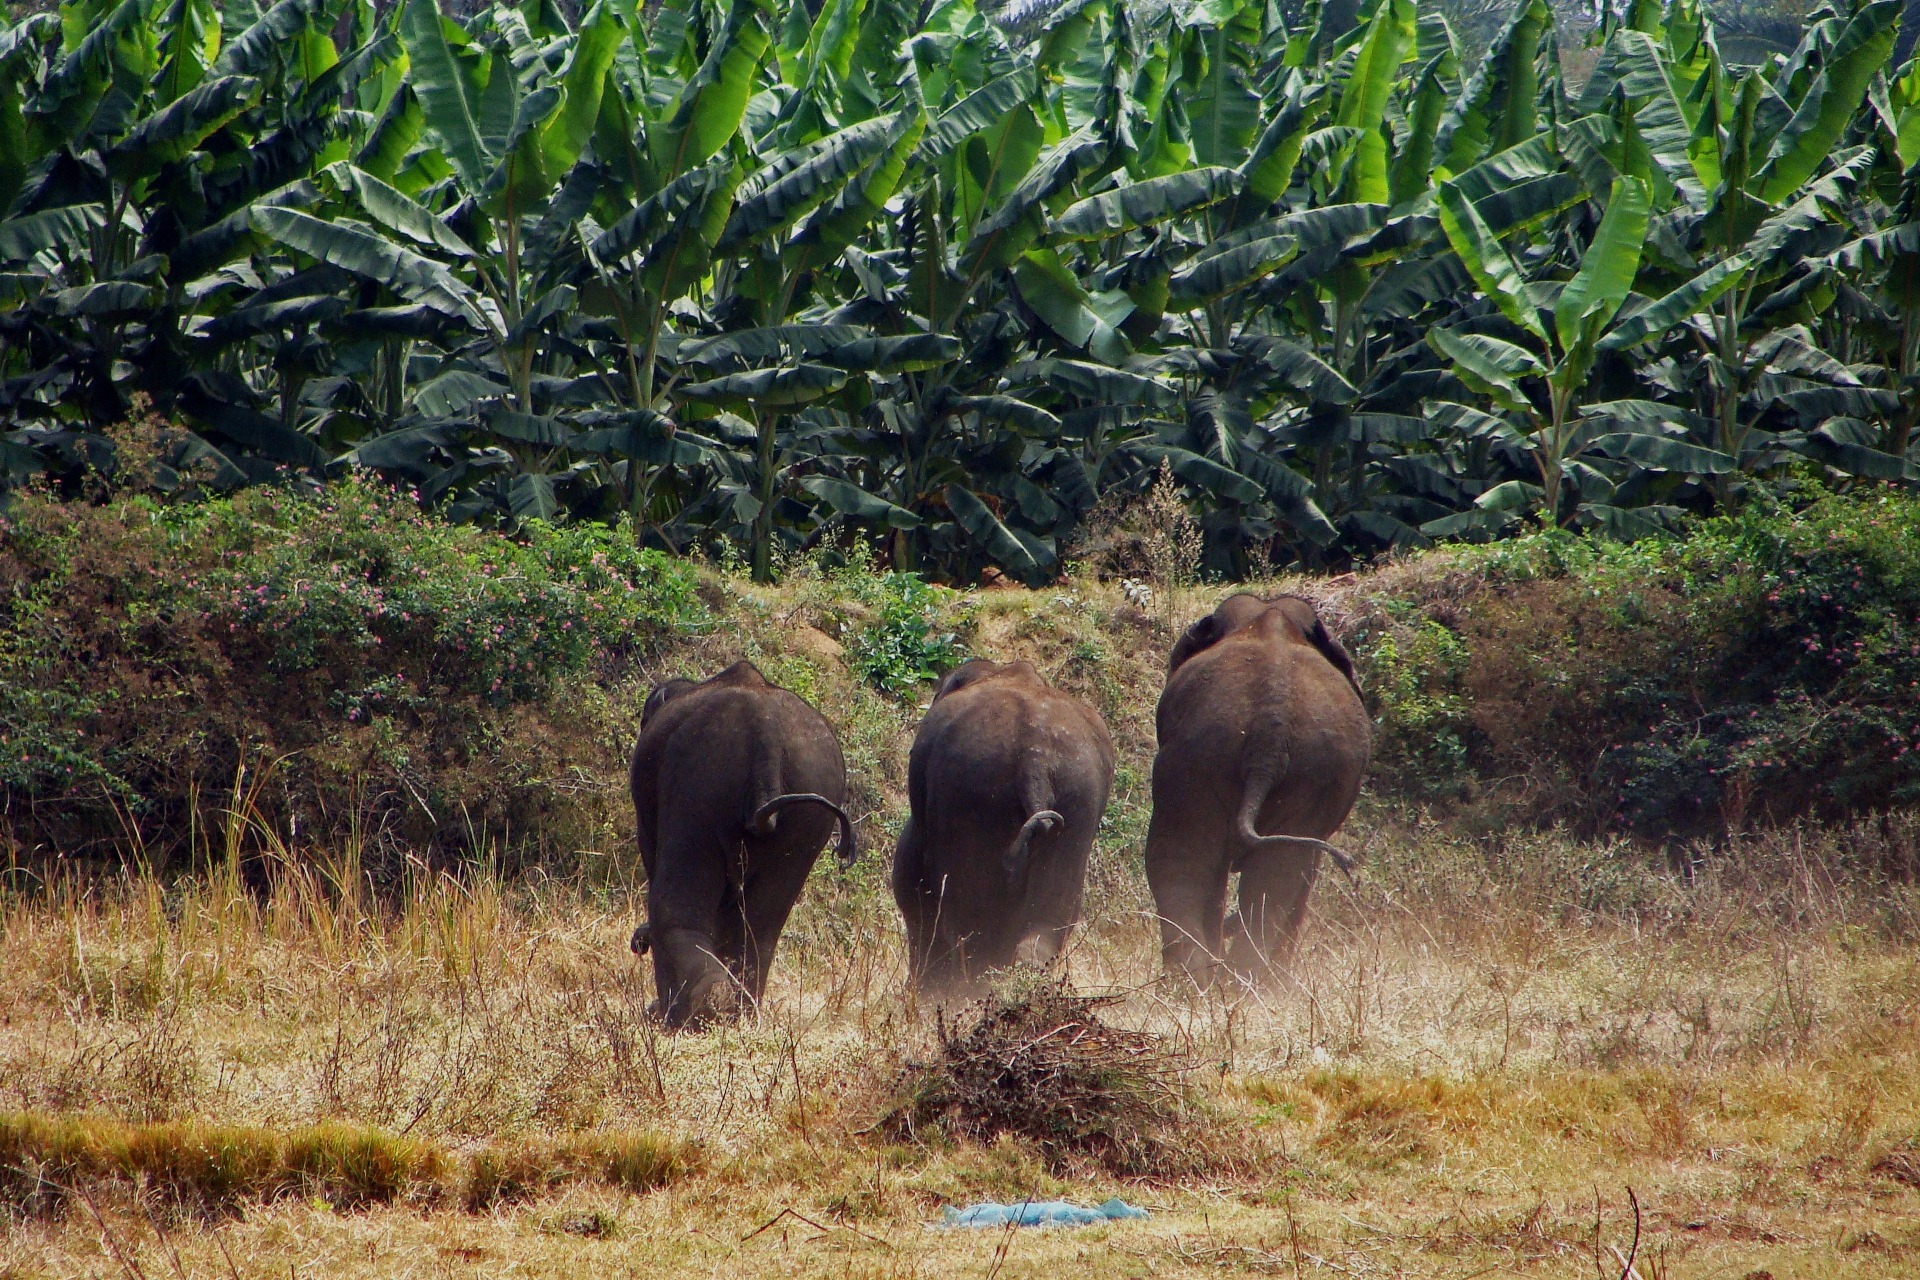 An all-male group of elephants moves towards a banana plantation. Researchers believe that males, usually territorial, form herds to survive threats of attack from humans in places with diminished food resources. Photo: FEP/Nishant Srinivasaiah